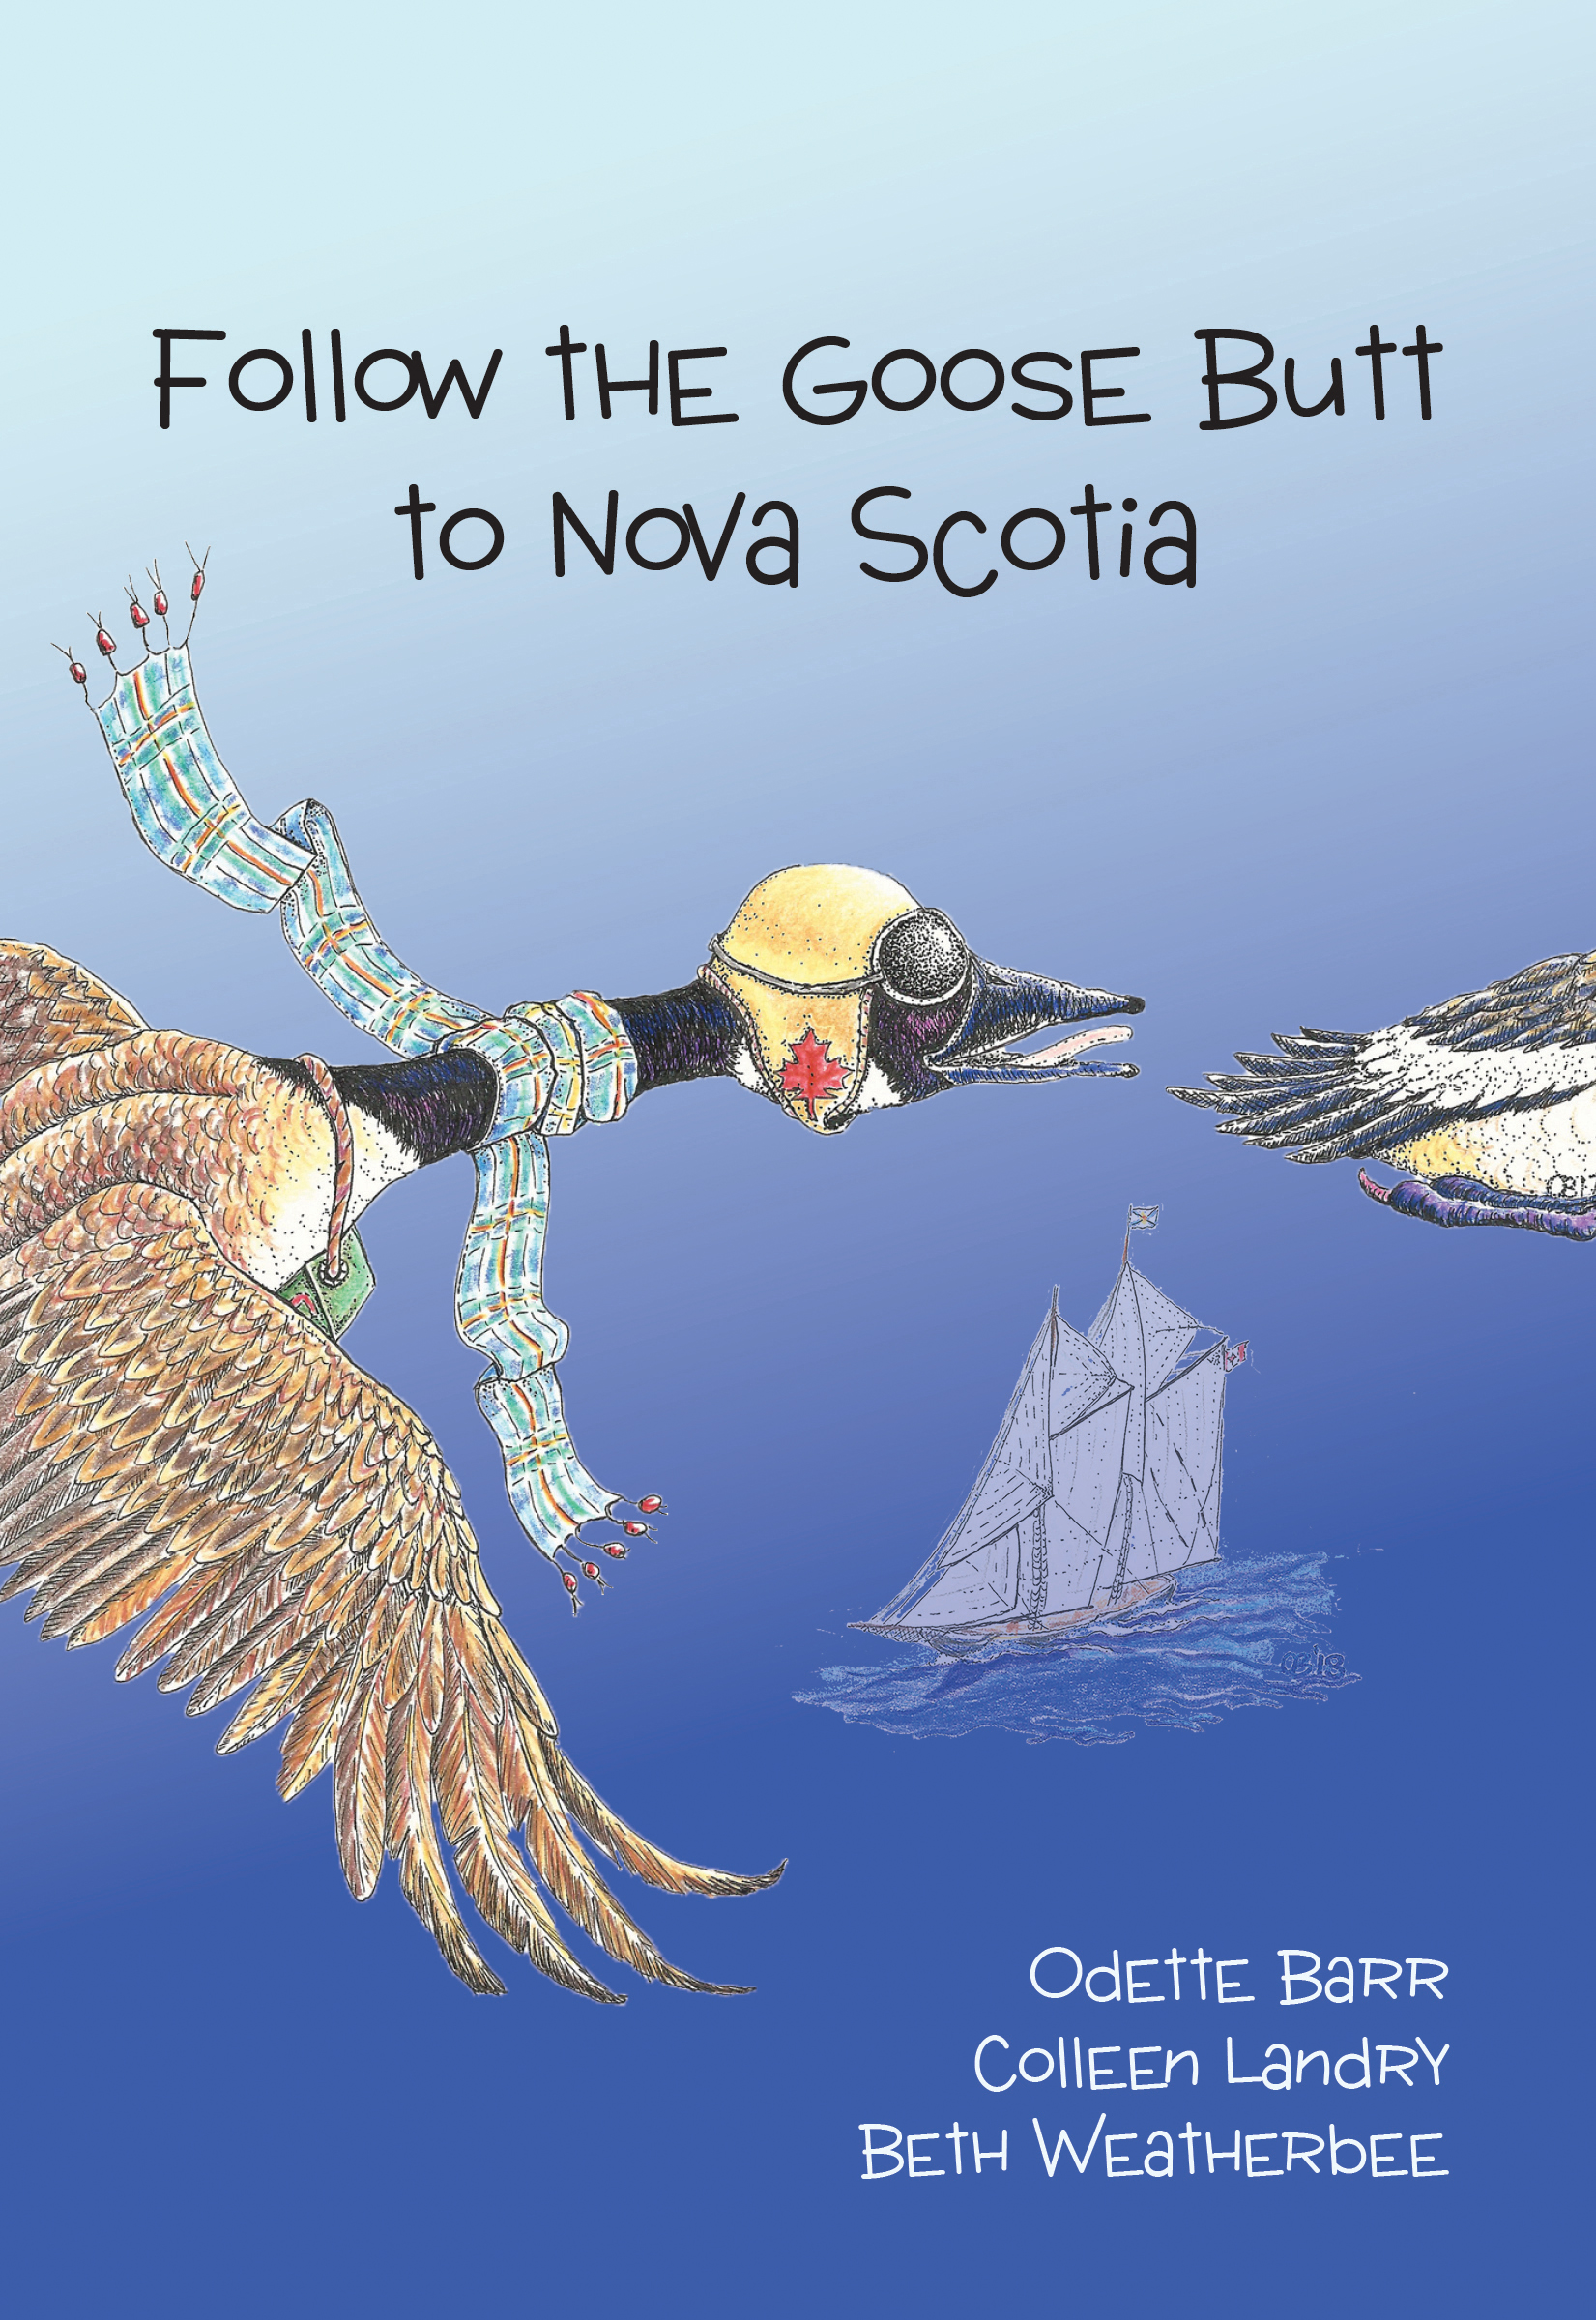 Follow the Goose Butt to Nova Scotia